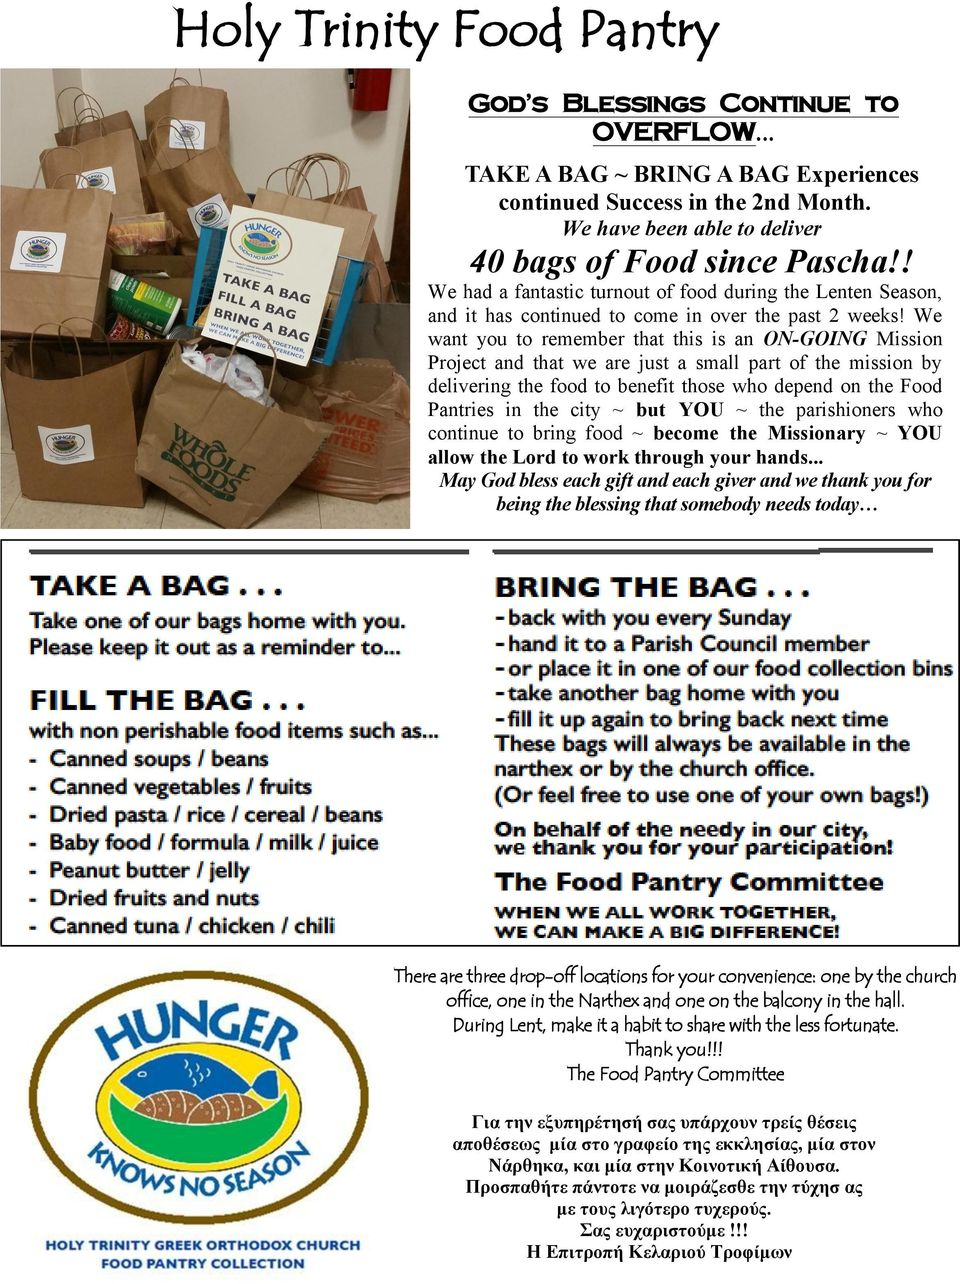 We want you to remember that this is an ON-GOING Mission Project and that we are just a small part of the mission by delivering the food to benefit those who depend on the Food Pantries in the city ~